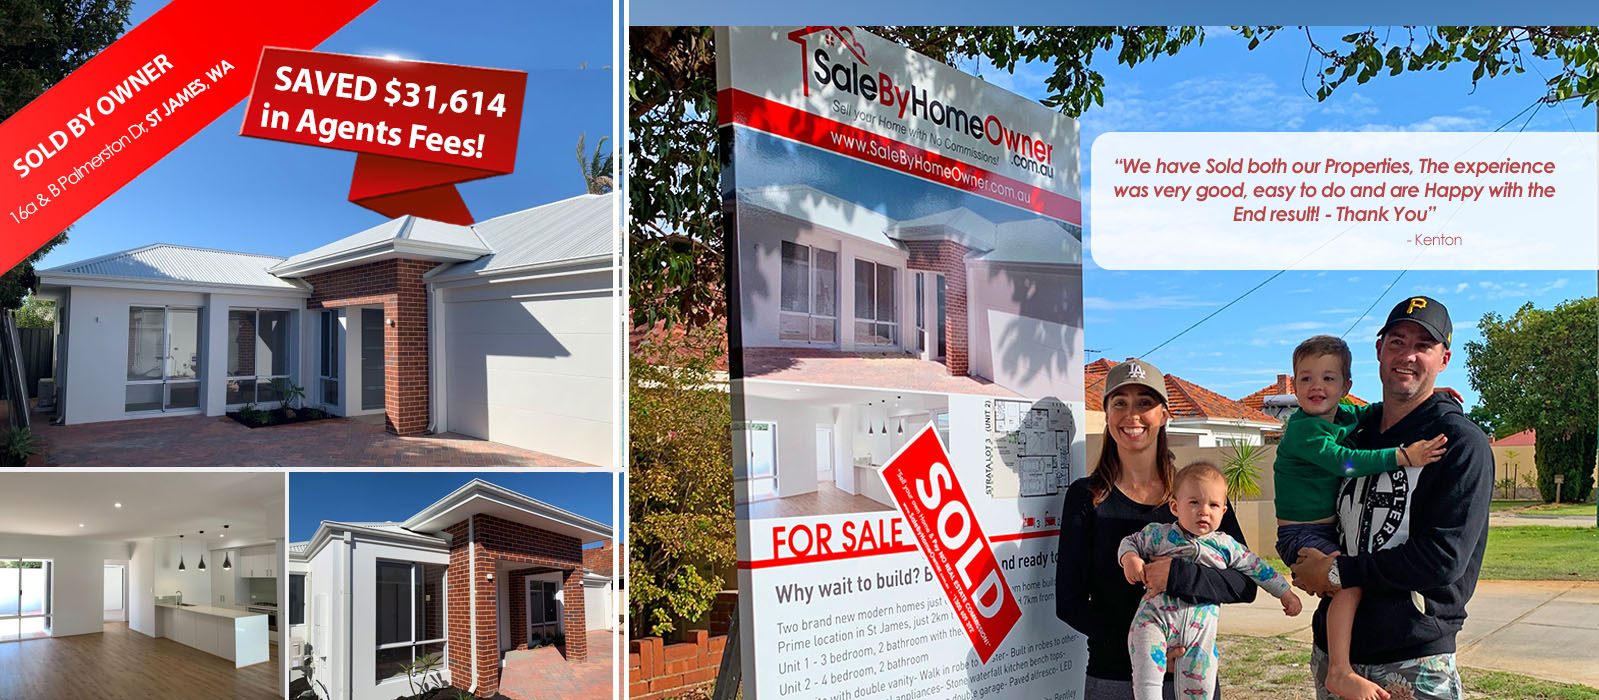 Houses For Sale Privately. View Homes For Sale By Owner in QLD